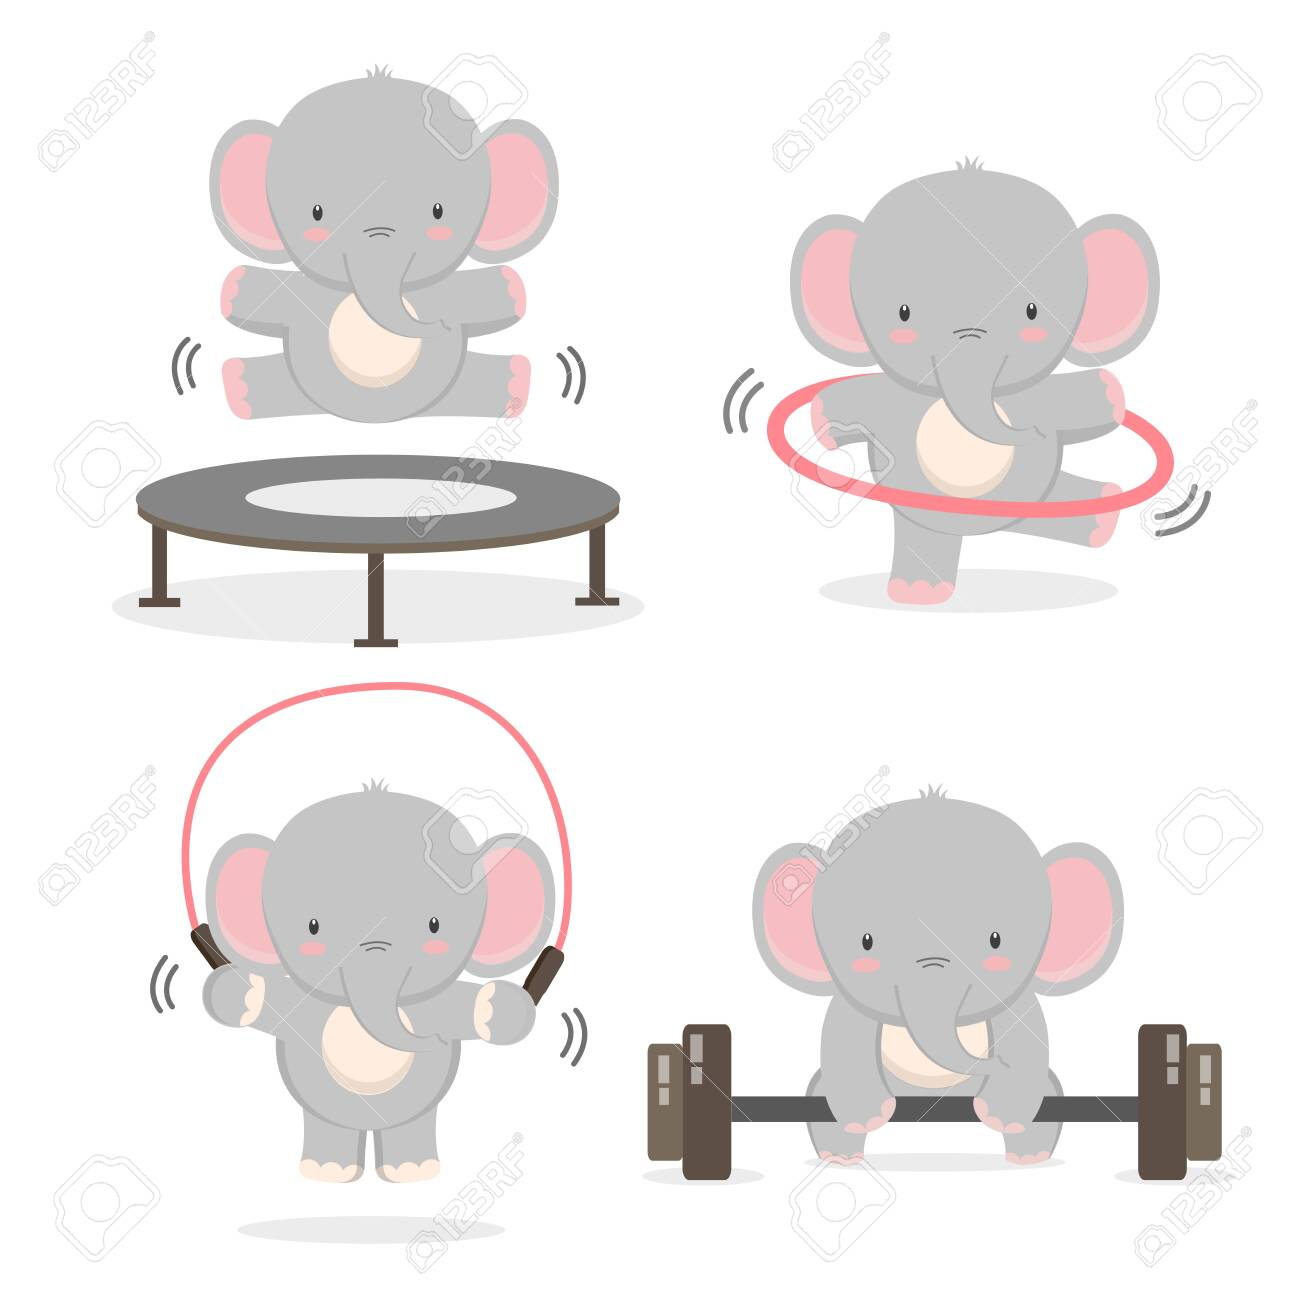 Funny Elephant Doing Exercise Fitness And Healthy Lifestyle Royalty Free Cliparts Vectors And Stock Illustration Image 132730341